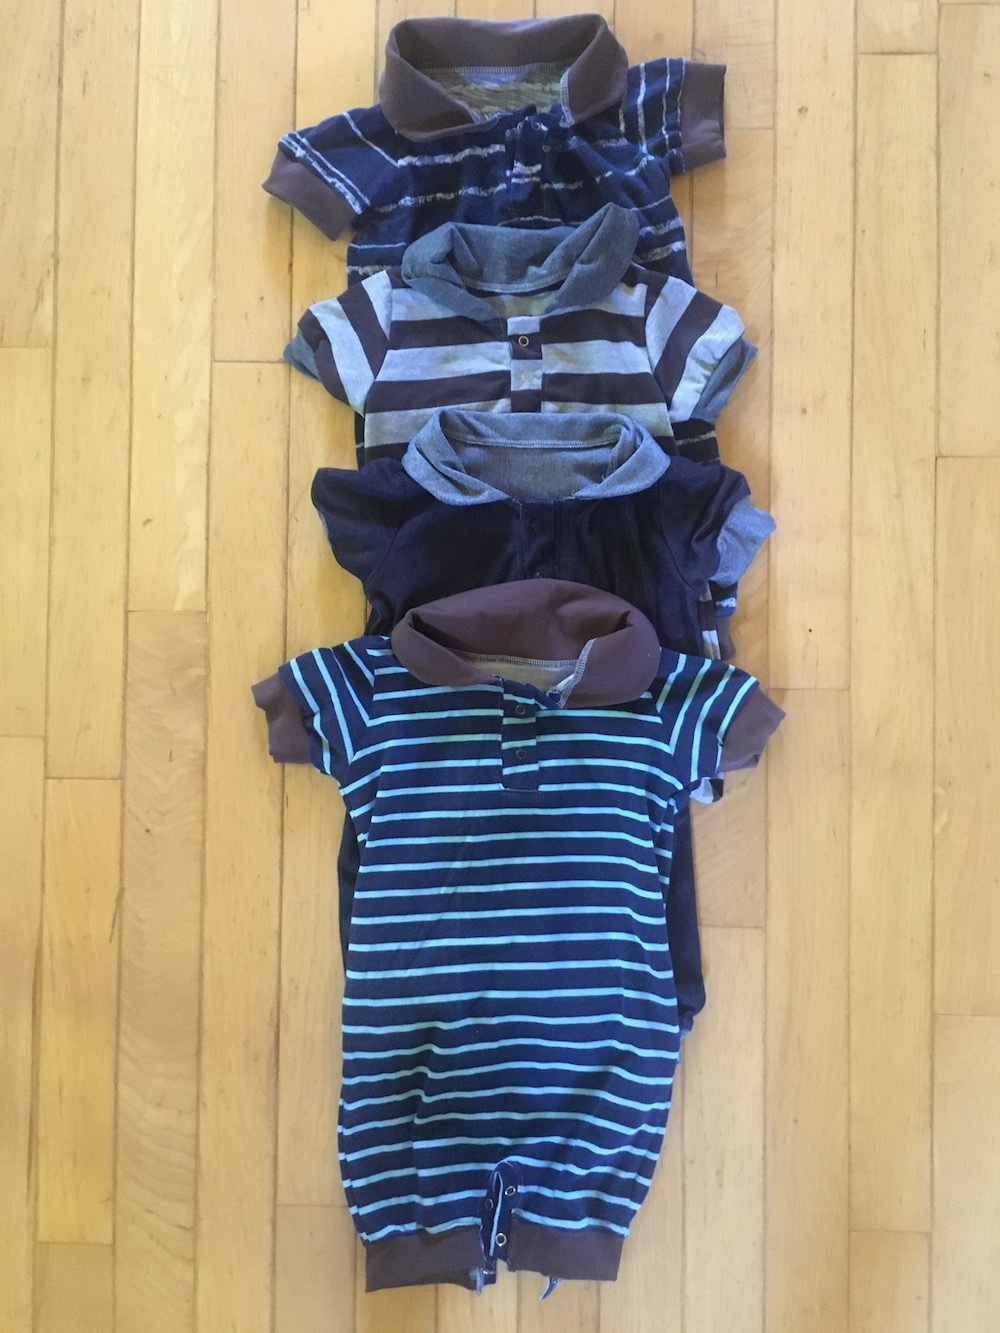 1 year old BOY capsule wardrobe created and sewn by Skirt Fixation